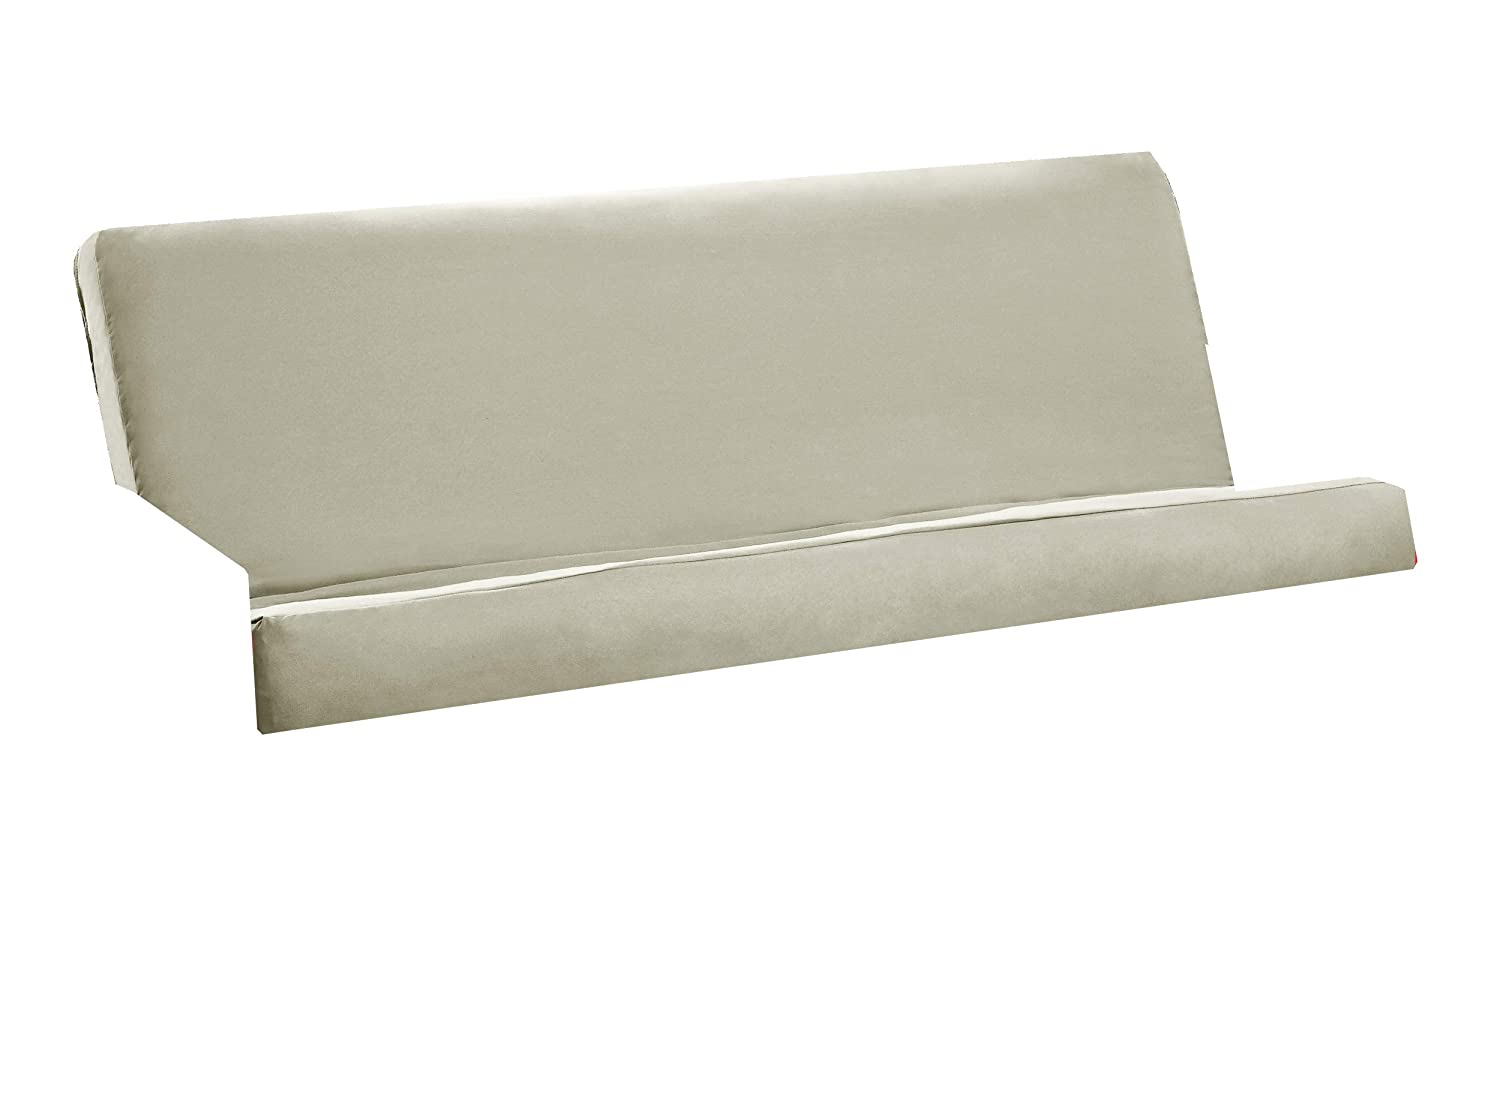 Ivory, Full Full or Queen Fits 6 to 8 Mattress Full Royal Sleep Products Futon Cover with 3 Sided Zipper Fits 6 to 8 Mattress Factory Direct COMIN16JU015385 Solid Colors Premium Cotton//Polyester Blend Futon Mattress Cover